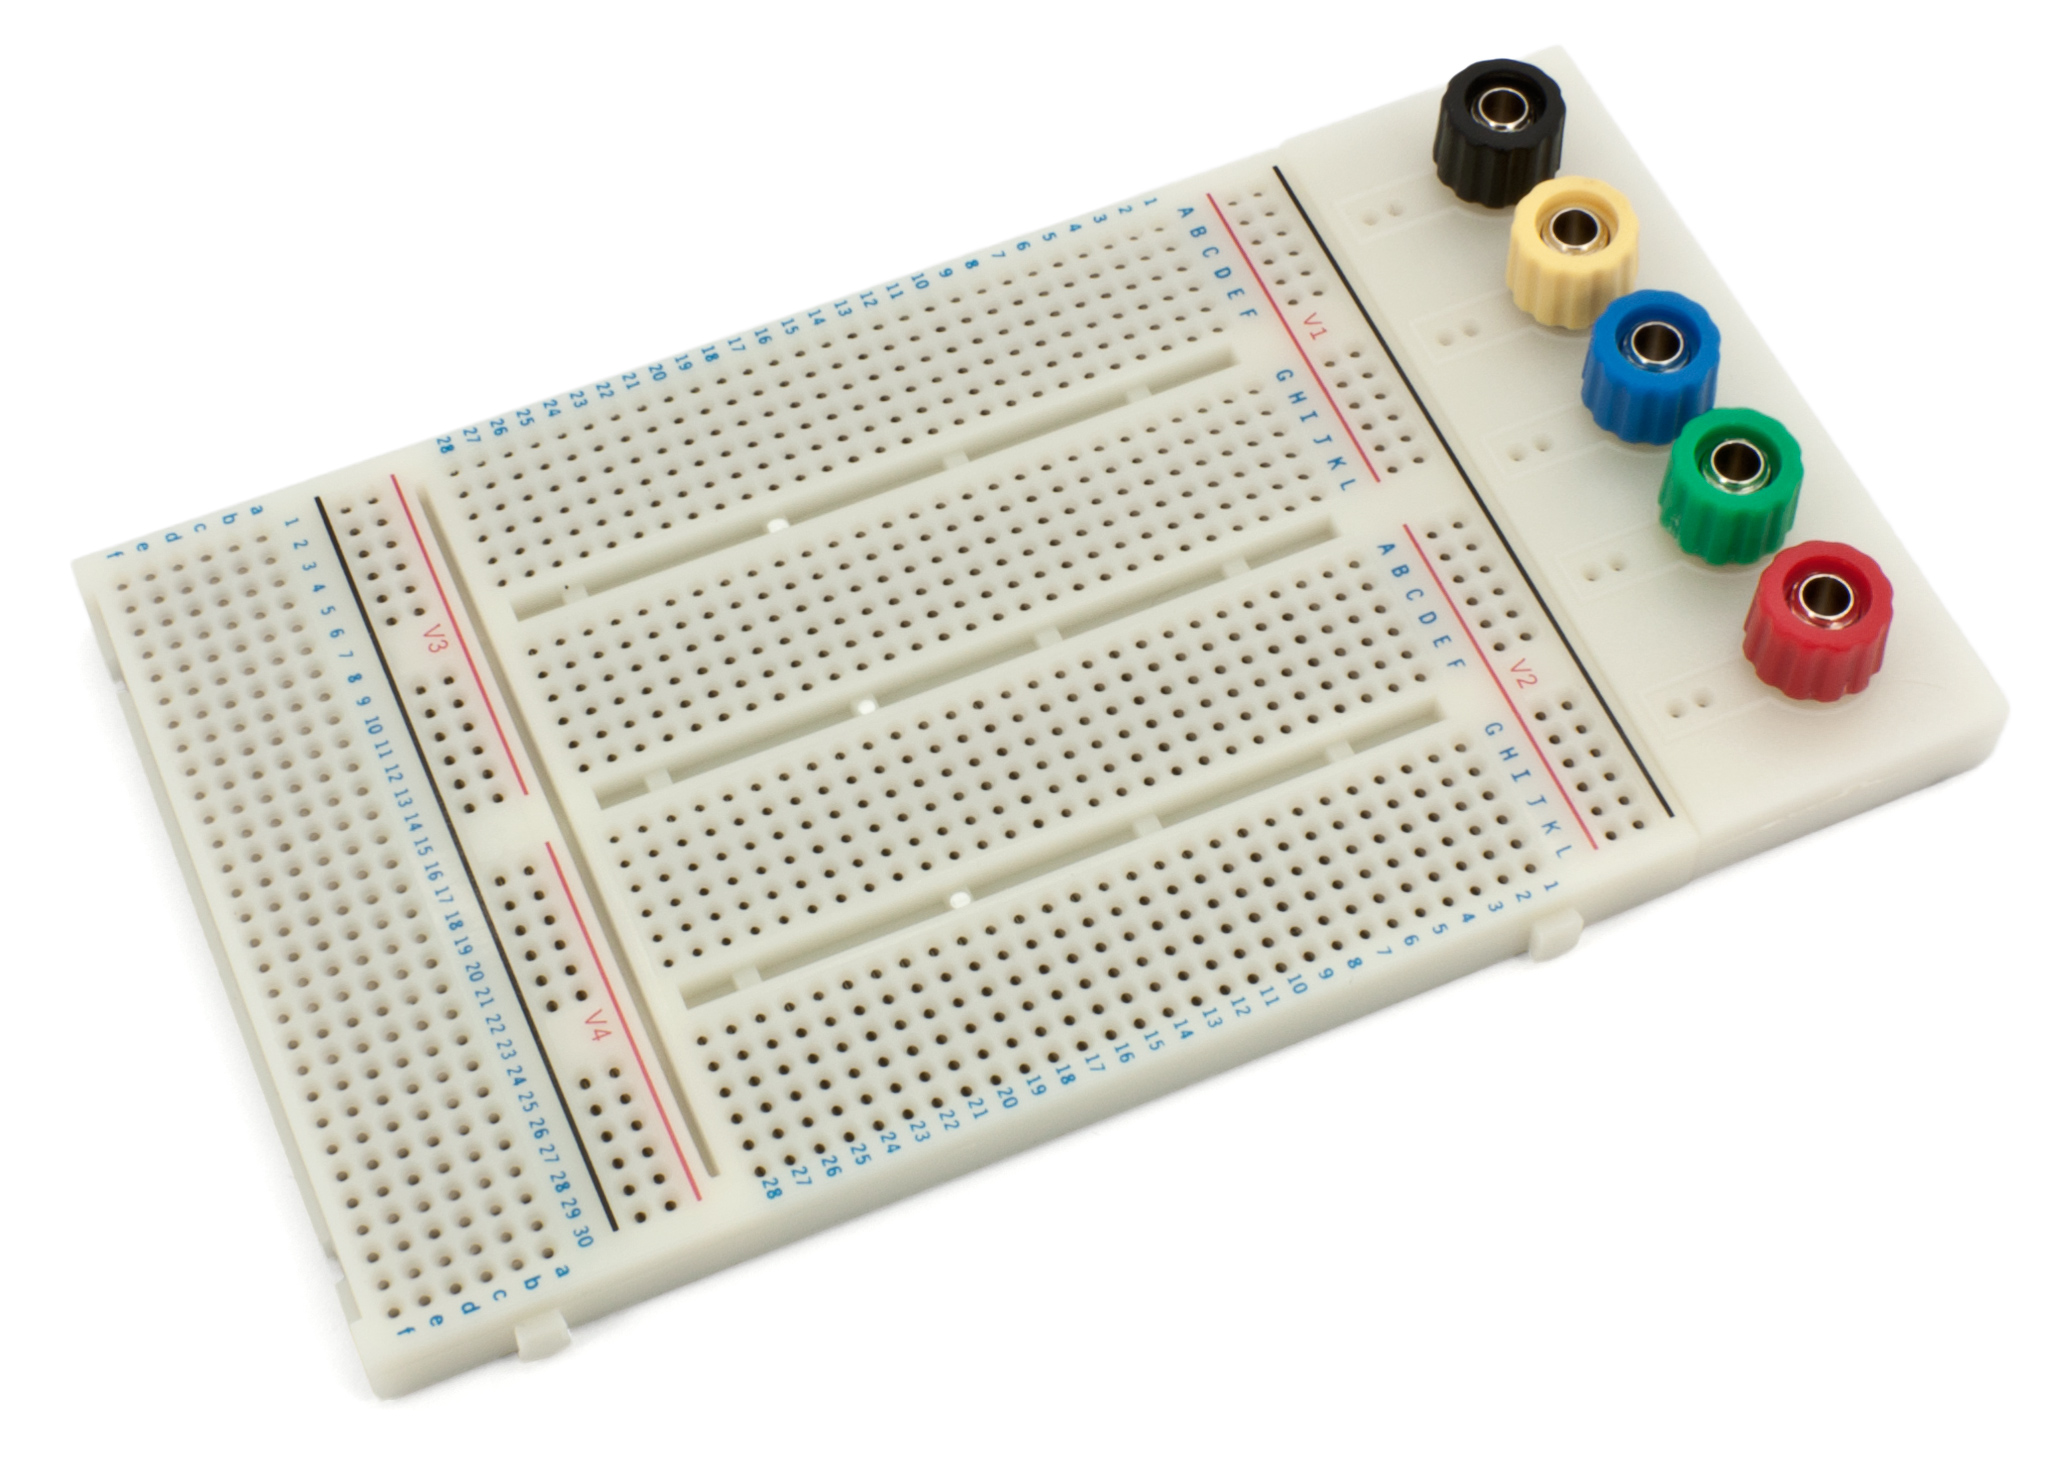 Buy Breadboard 958 At The Right Price Electrokit Breadboards Electronics Images Home Circuit Boards